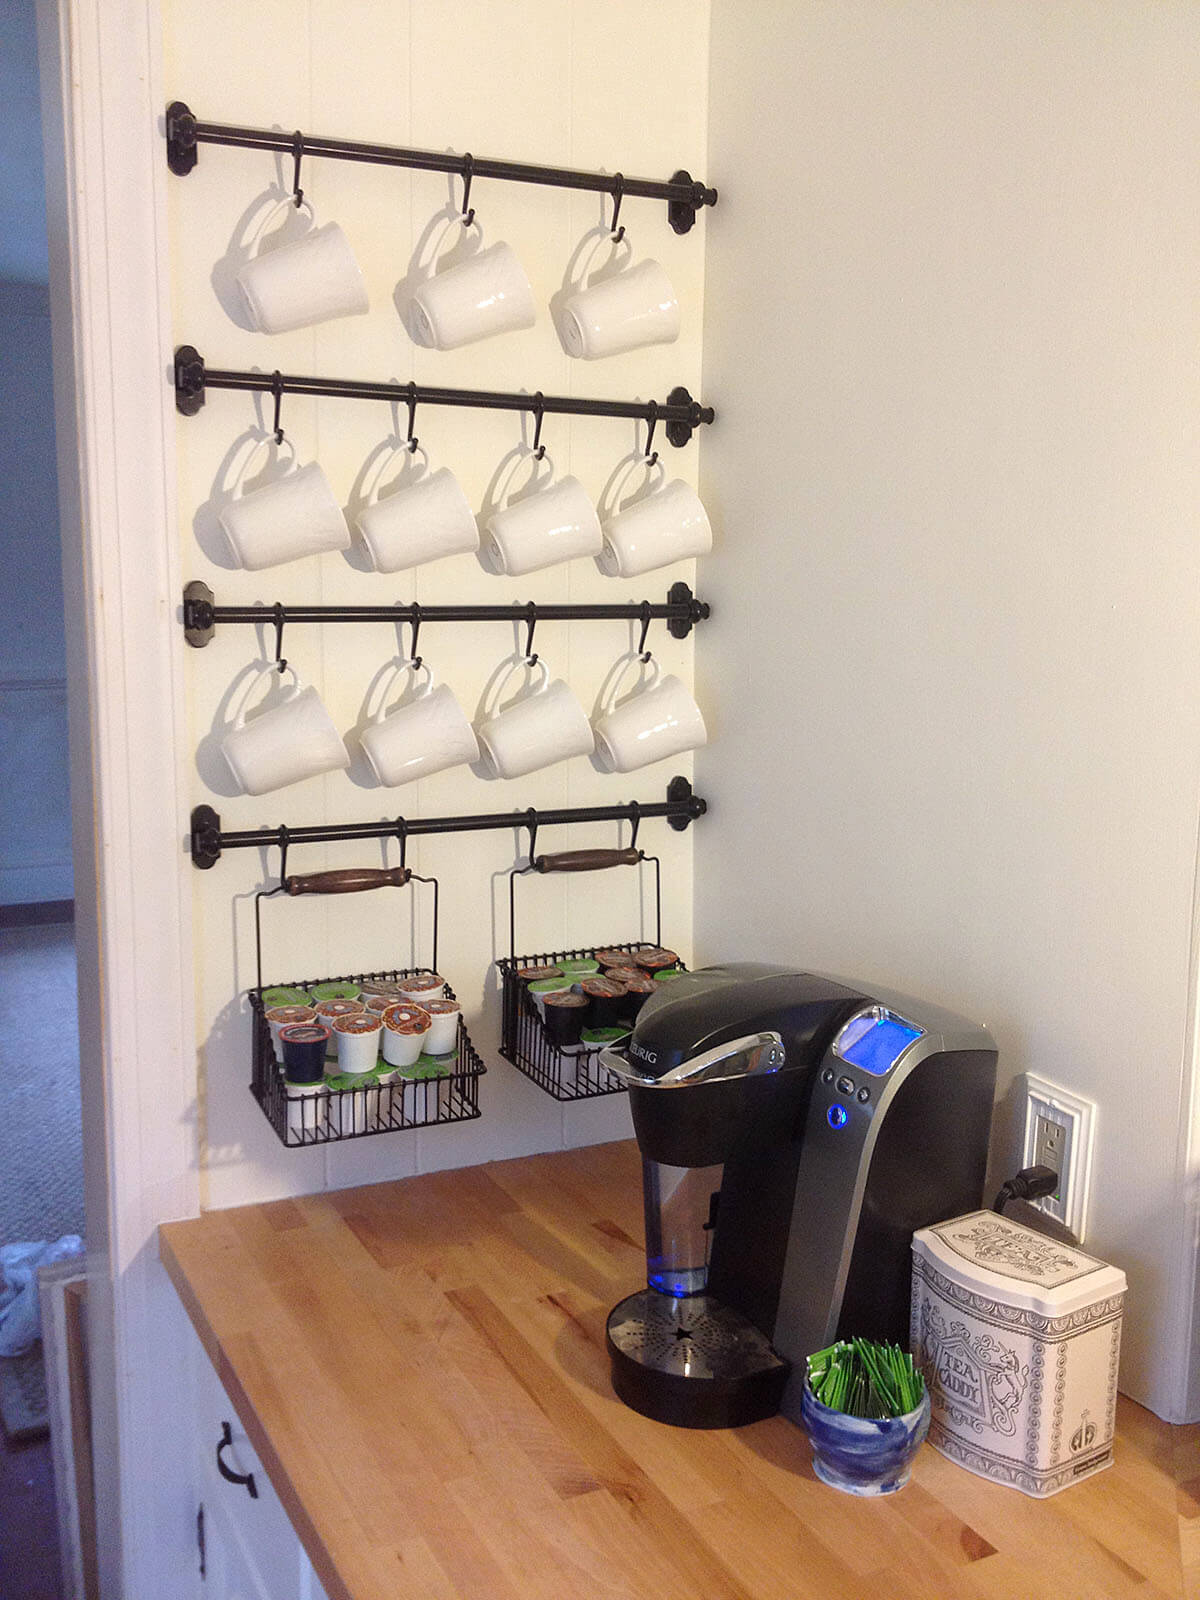 Wall-mounted Pipes with Mug Hooks and Storage Caddies